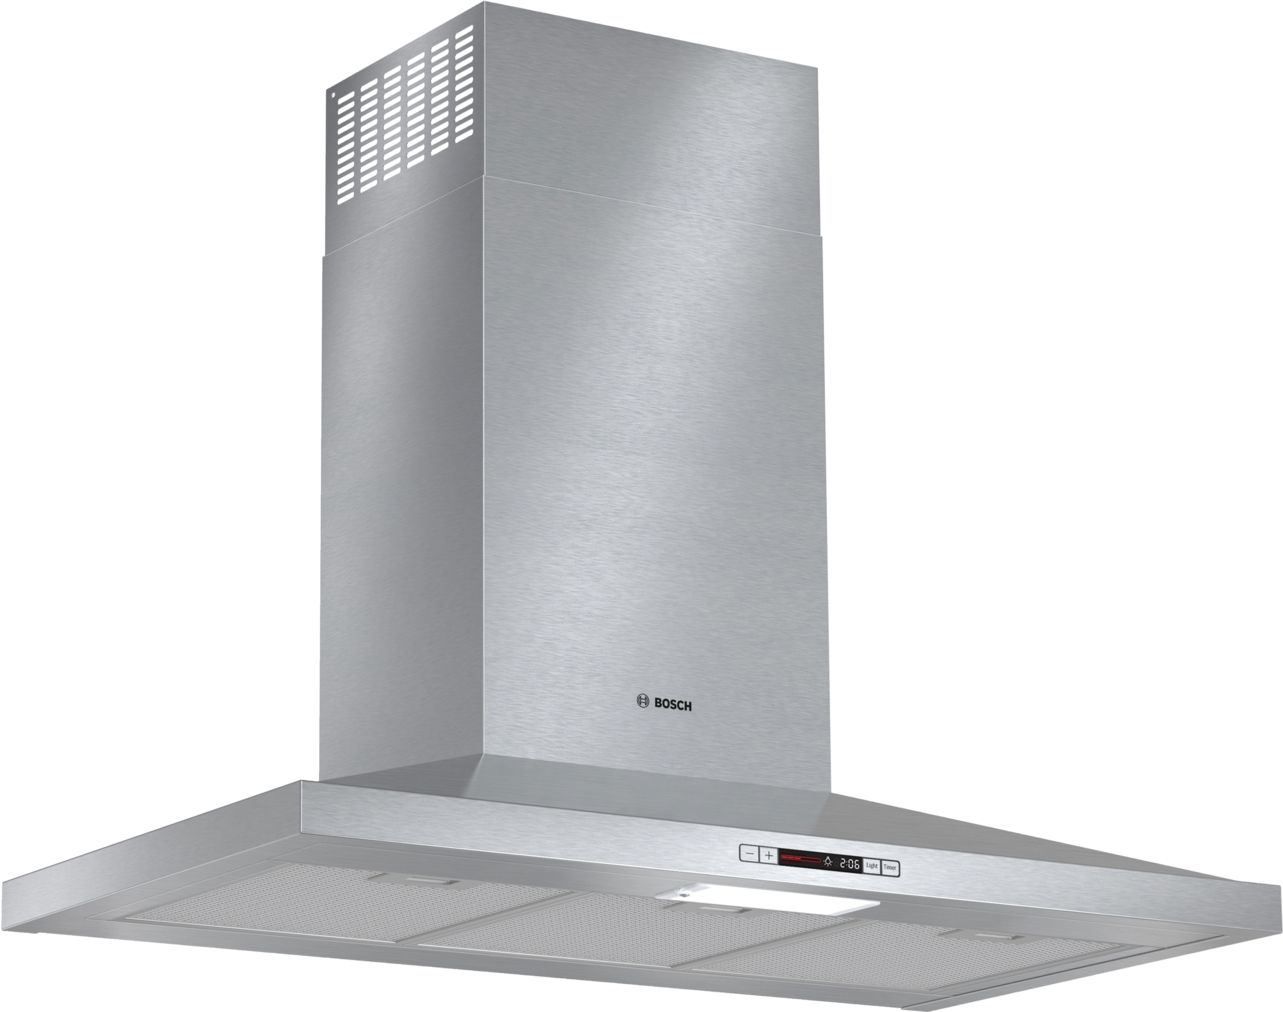 "Bosch 300 Series36"" Pyramid Canopy Chimney Hood, 300 CFM, ENERGY STAR®, HCP36E51UC, Stainless Steel"